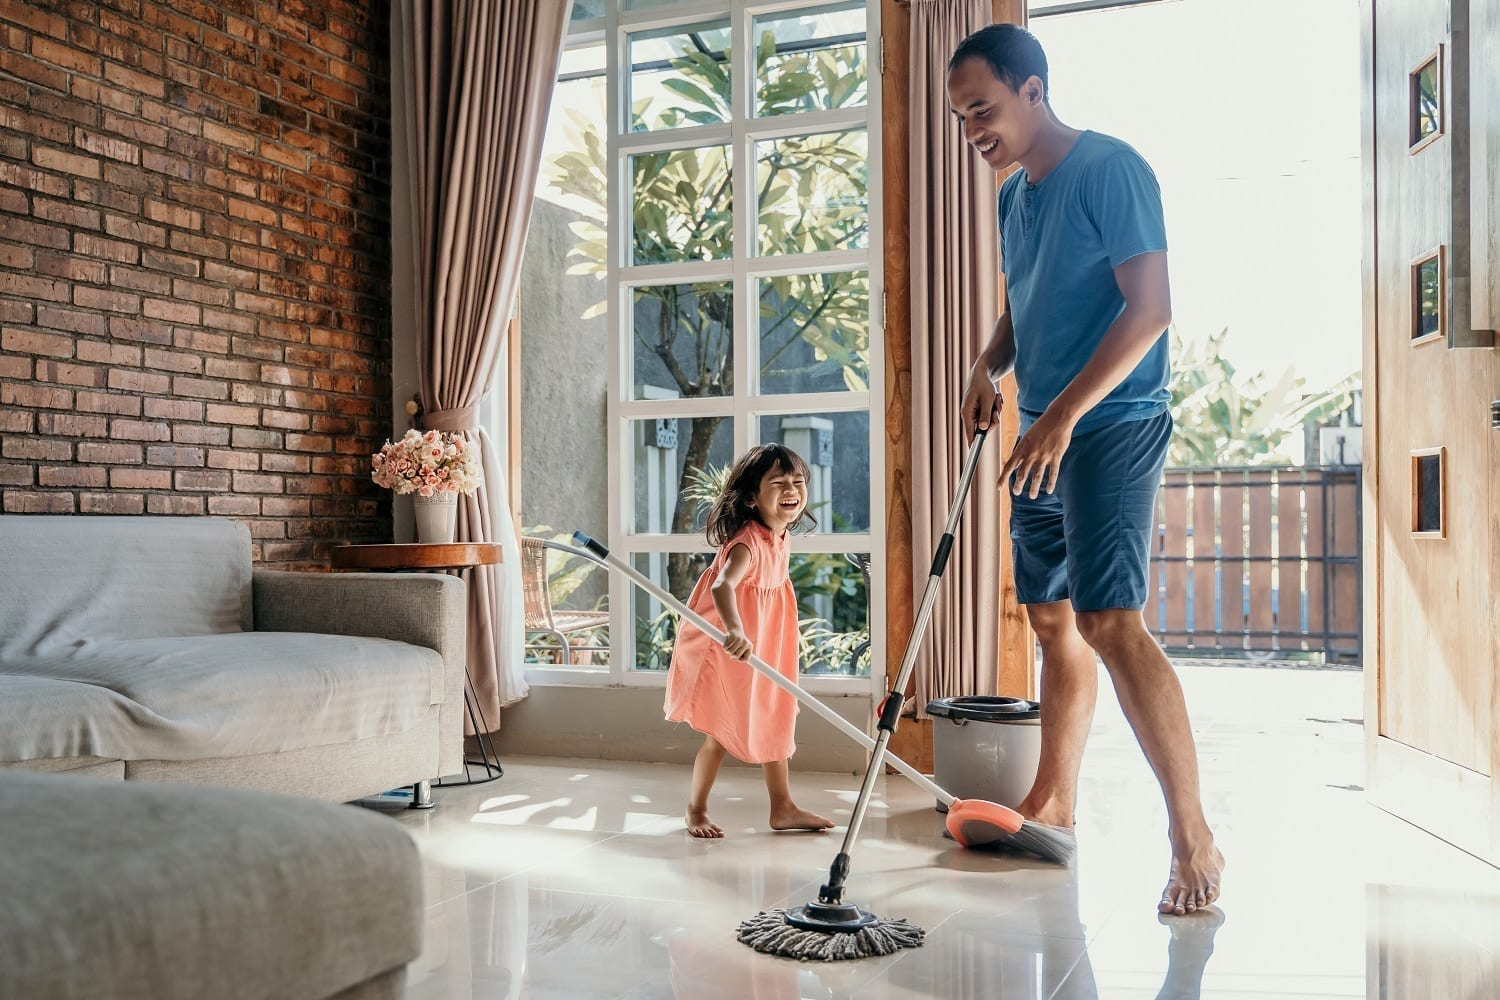 Man and daughter spring cleaning during coronavirus